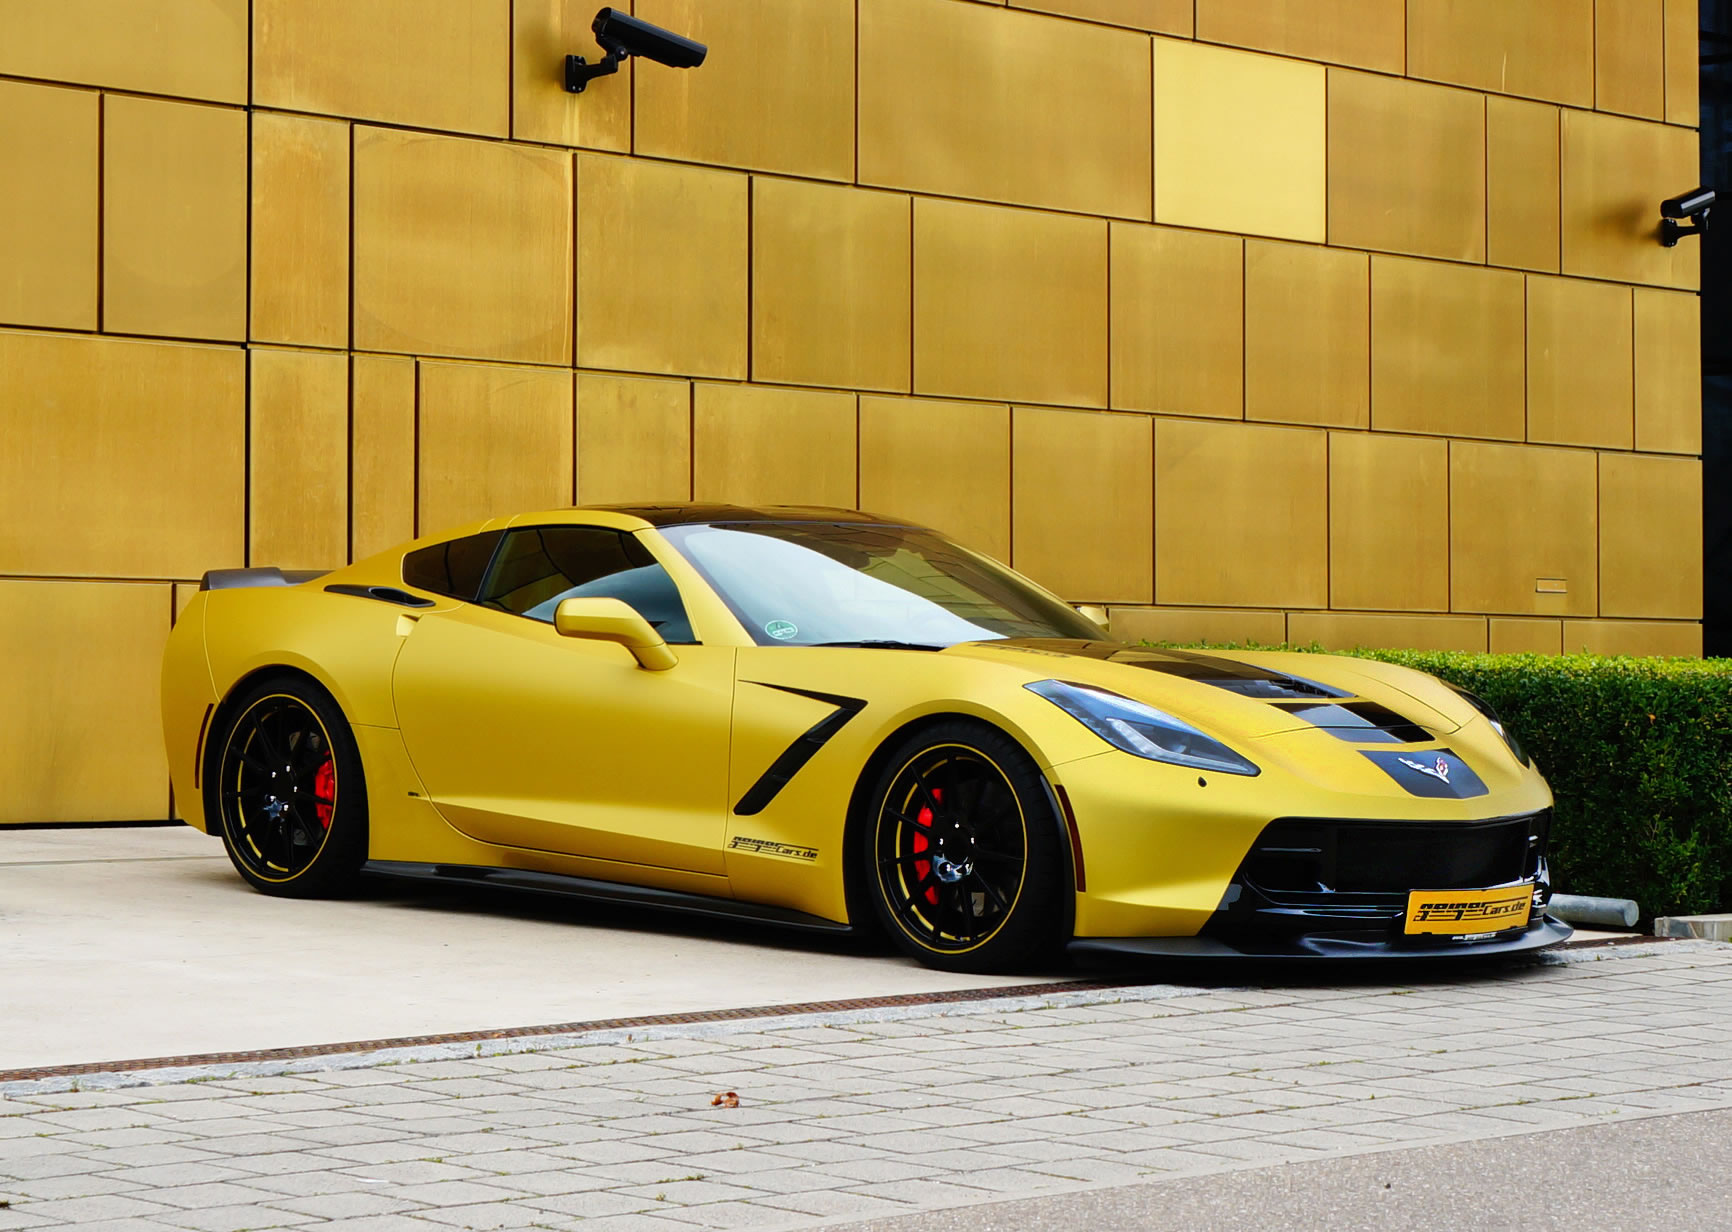 2015 Chevrolet Corvette By Geigercars Front Photo